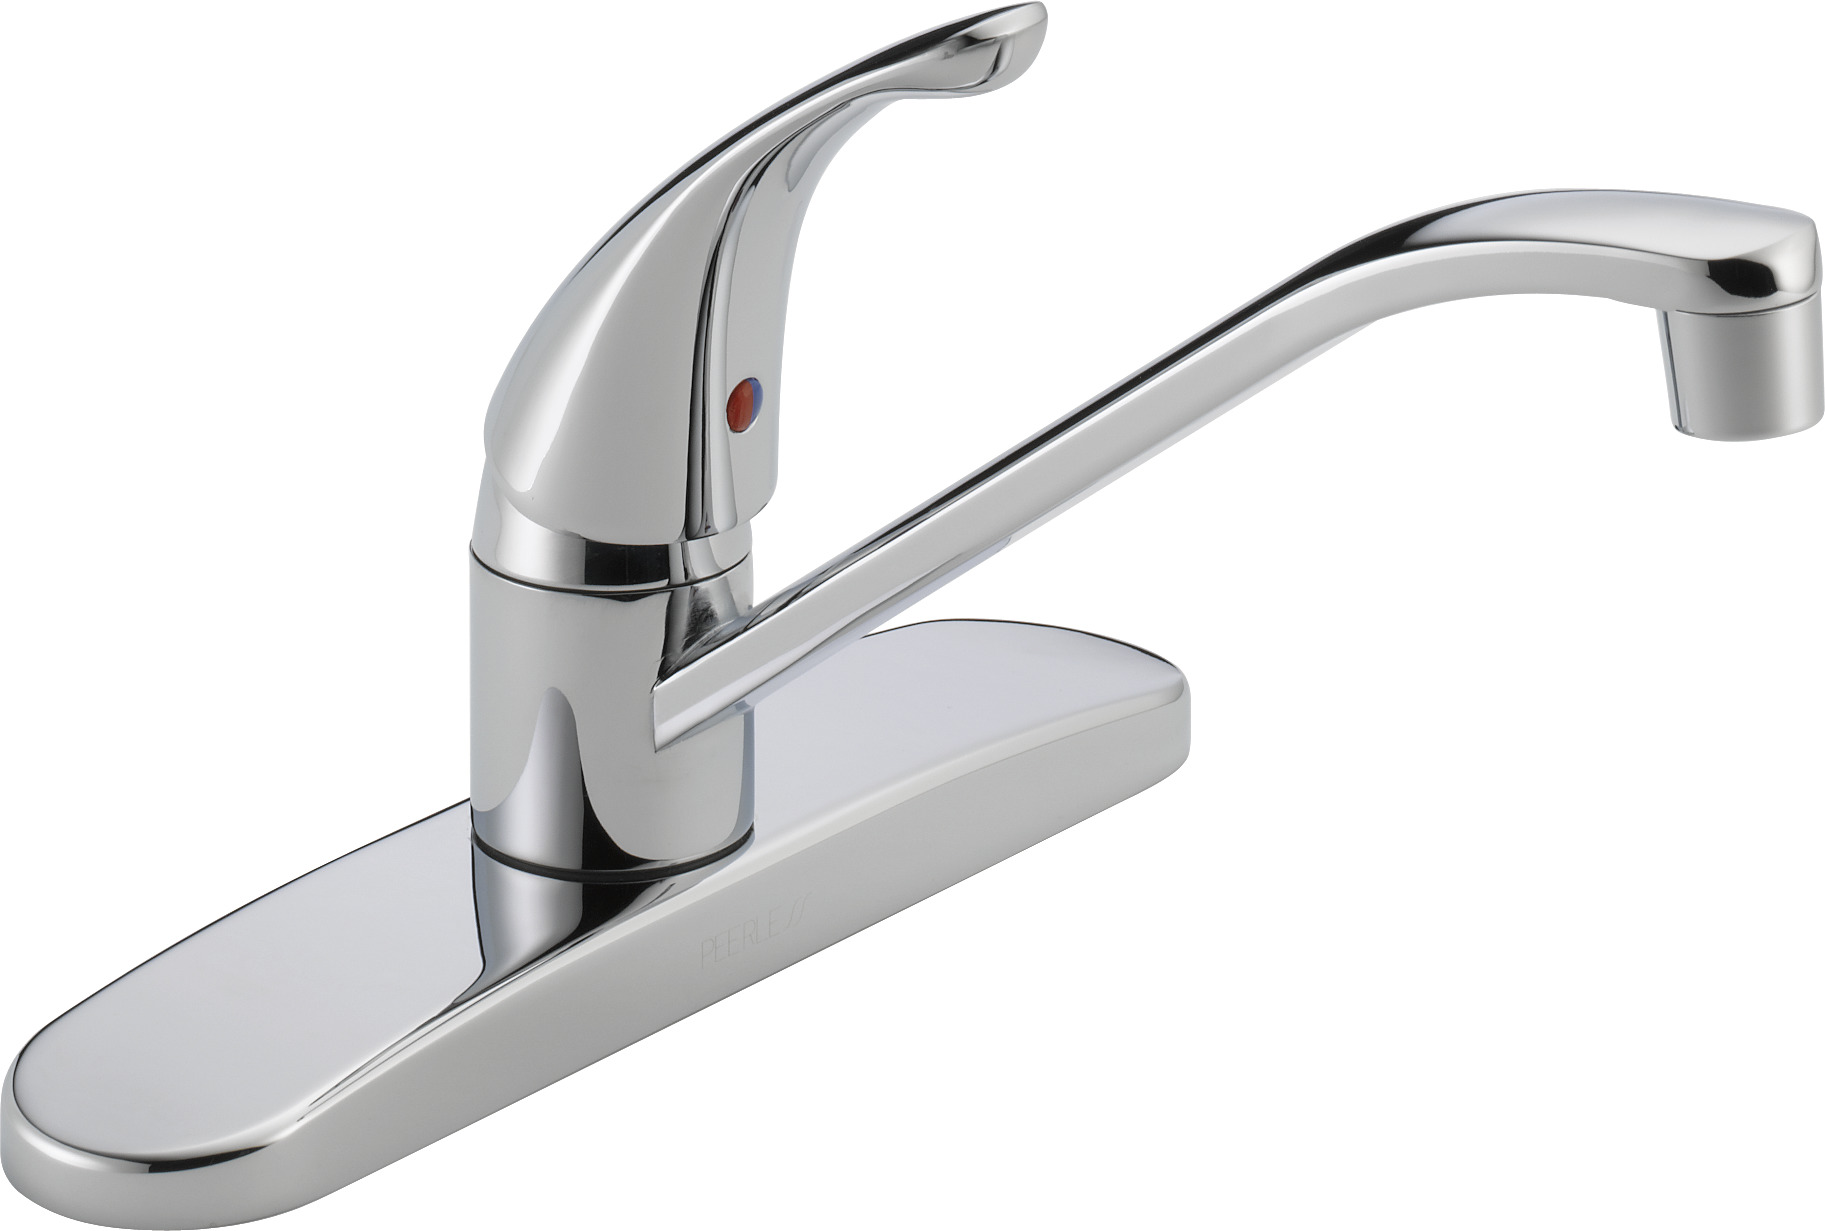 Product Image Peerless Single Handle Kitchen Faucet With Single Lever  Control, Chrome